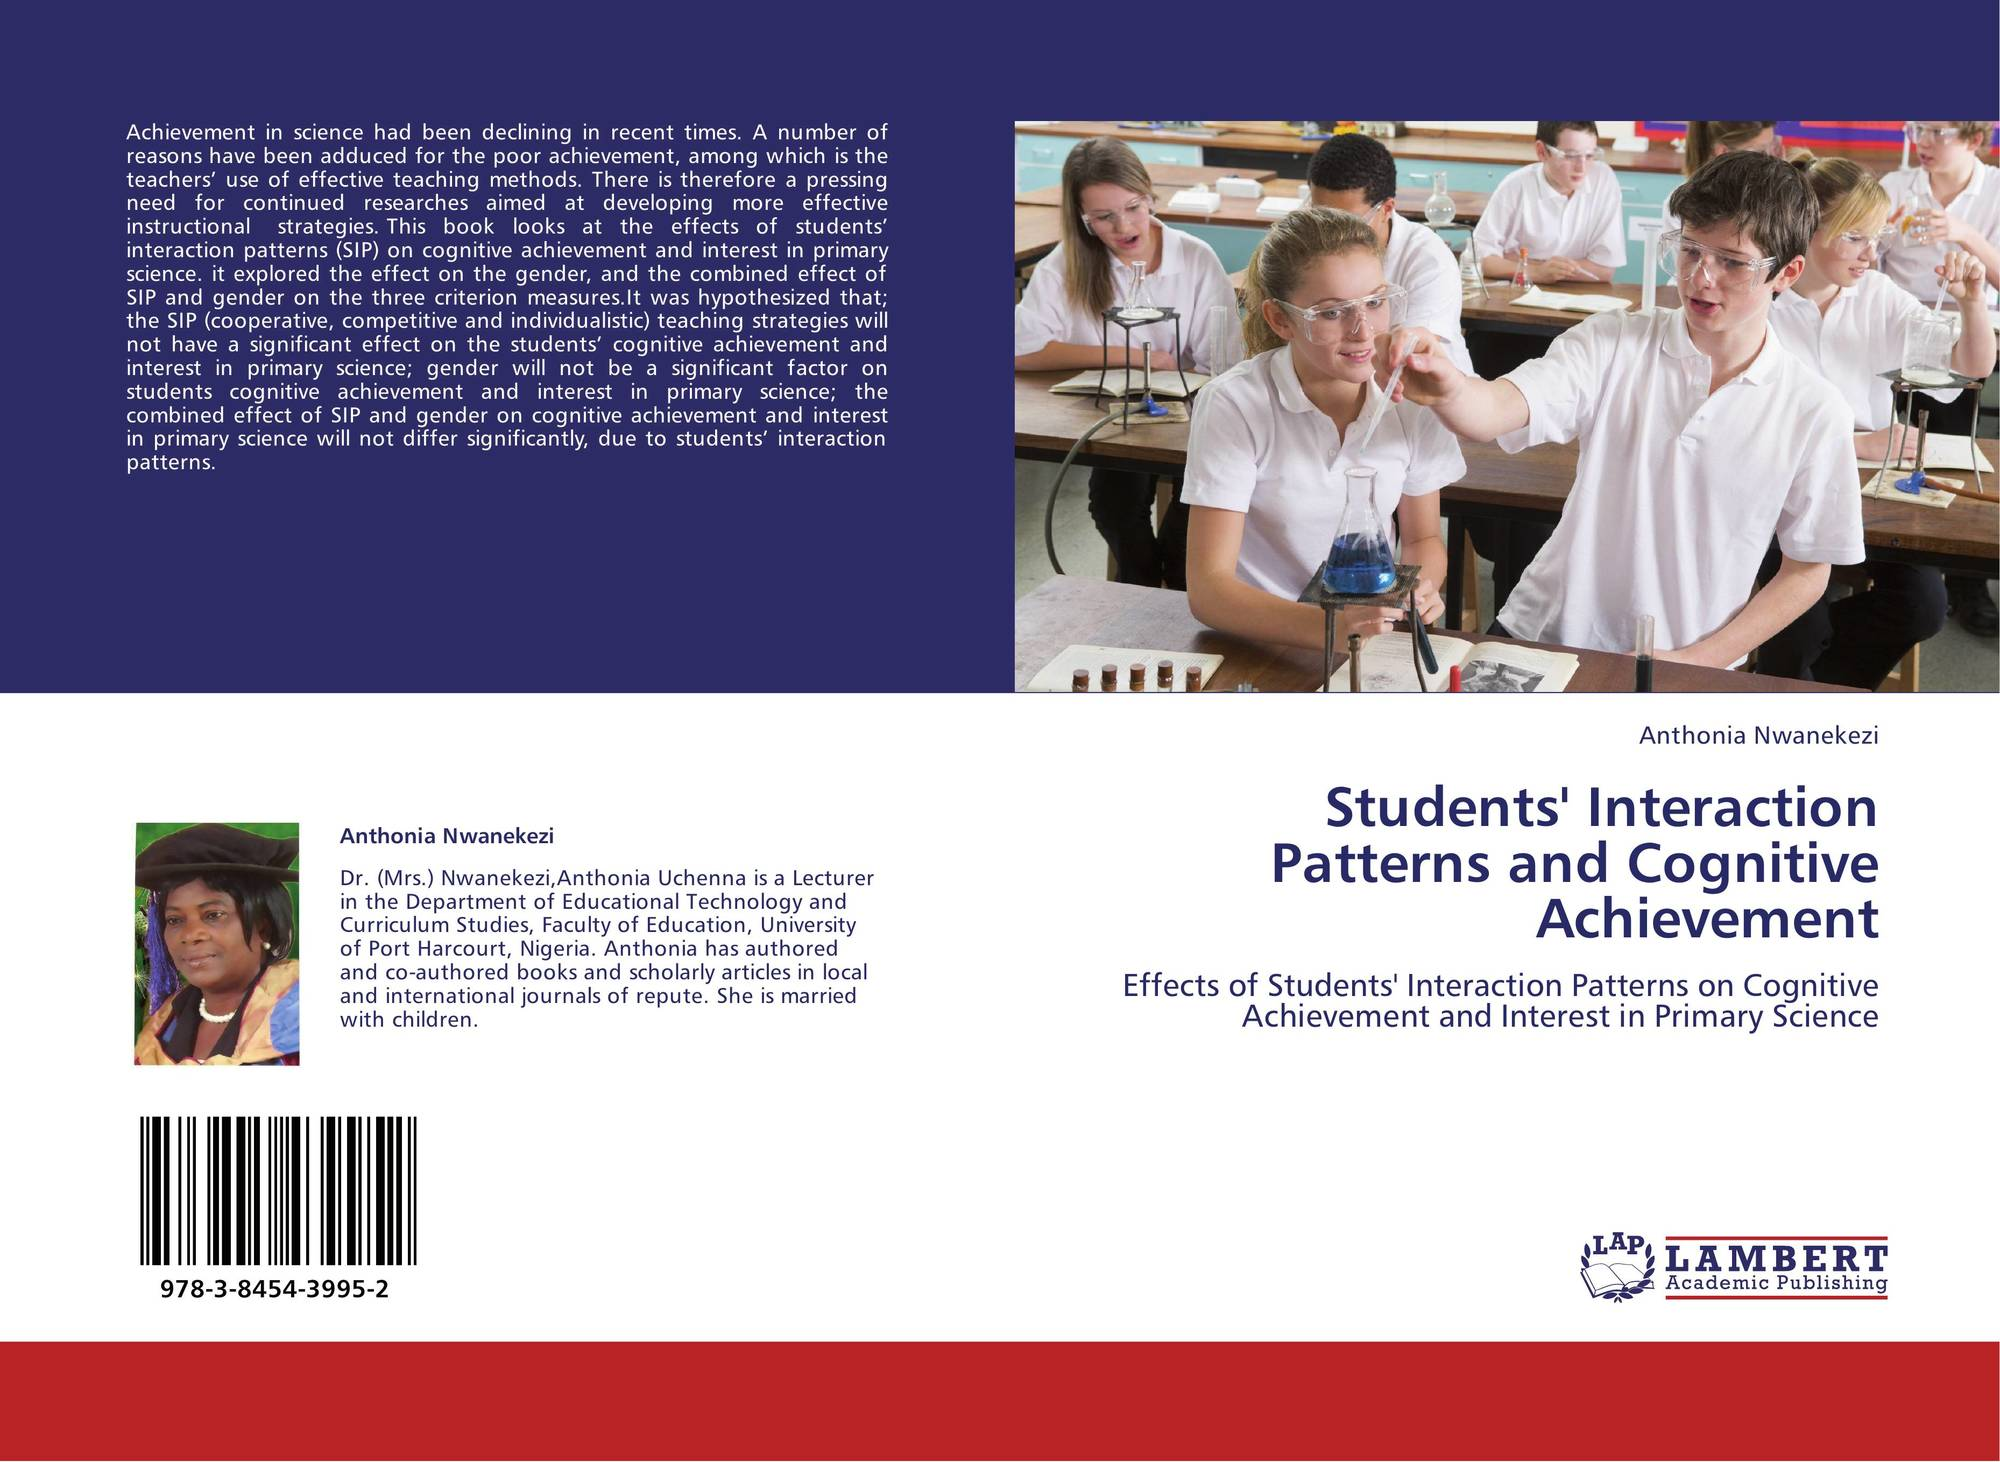 a research on the social and cognitive effects of grouping students Other benefits of universal school-based programs have been noted, with supporting evidence for some of these effects (15,46,49) improvements were reported for social behavior more broadly, including reductions in drug abuse, inappropriate sexual behavior, delinquency, and property crime.